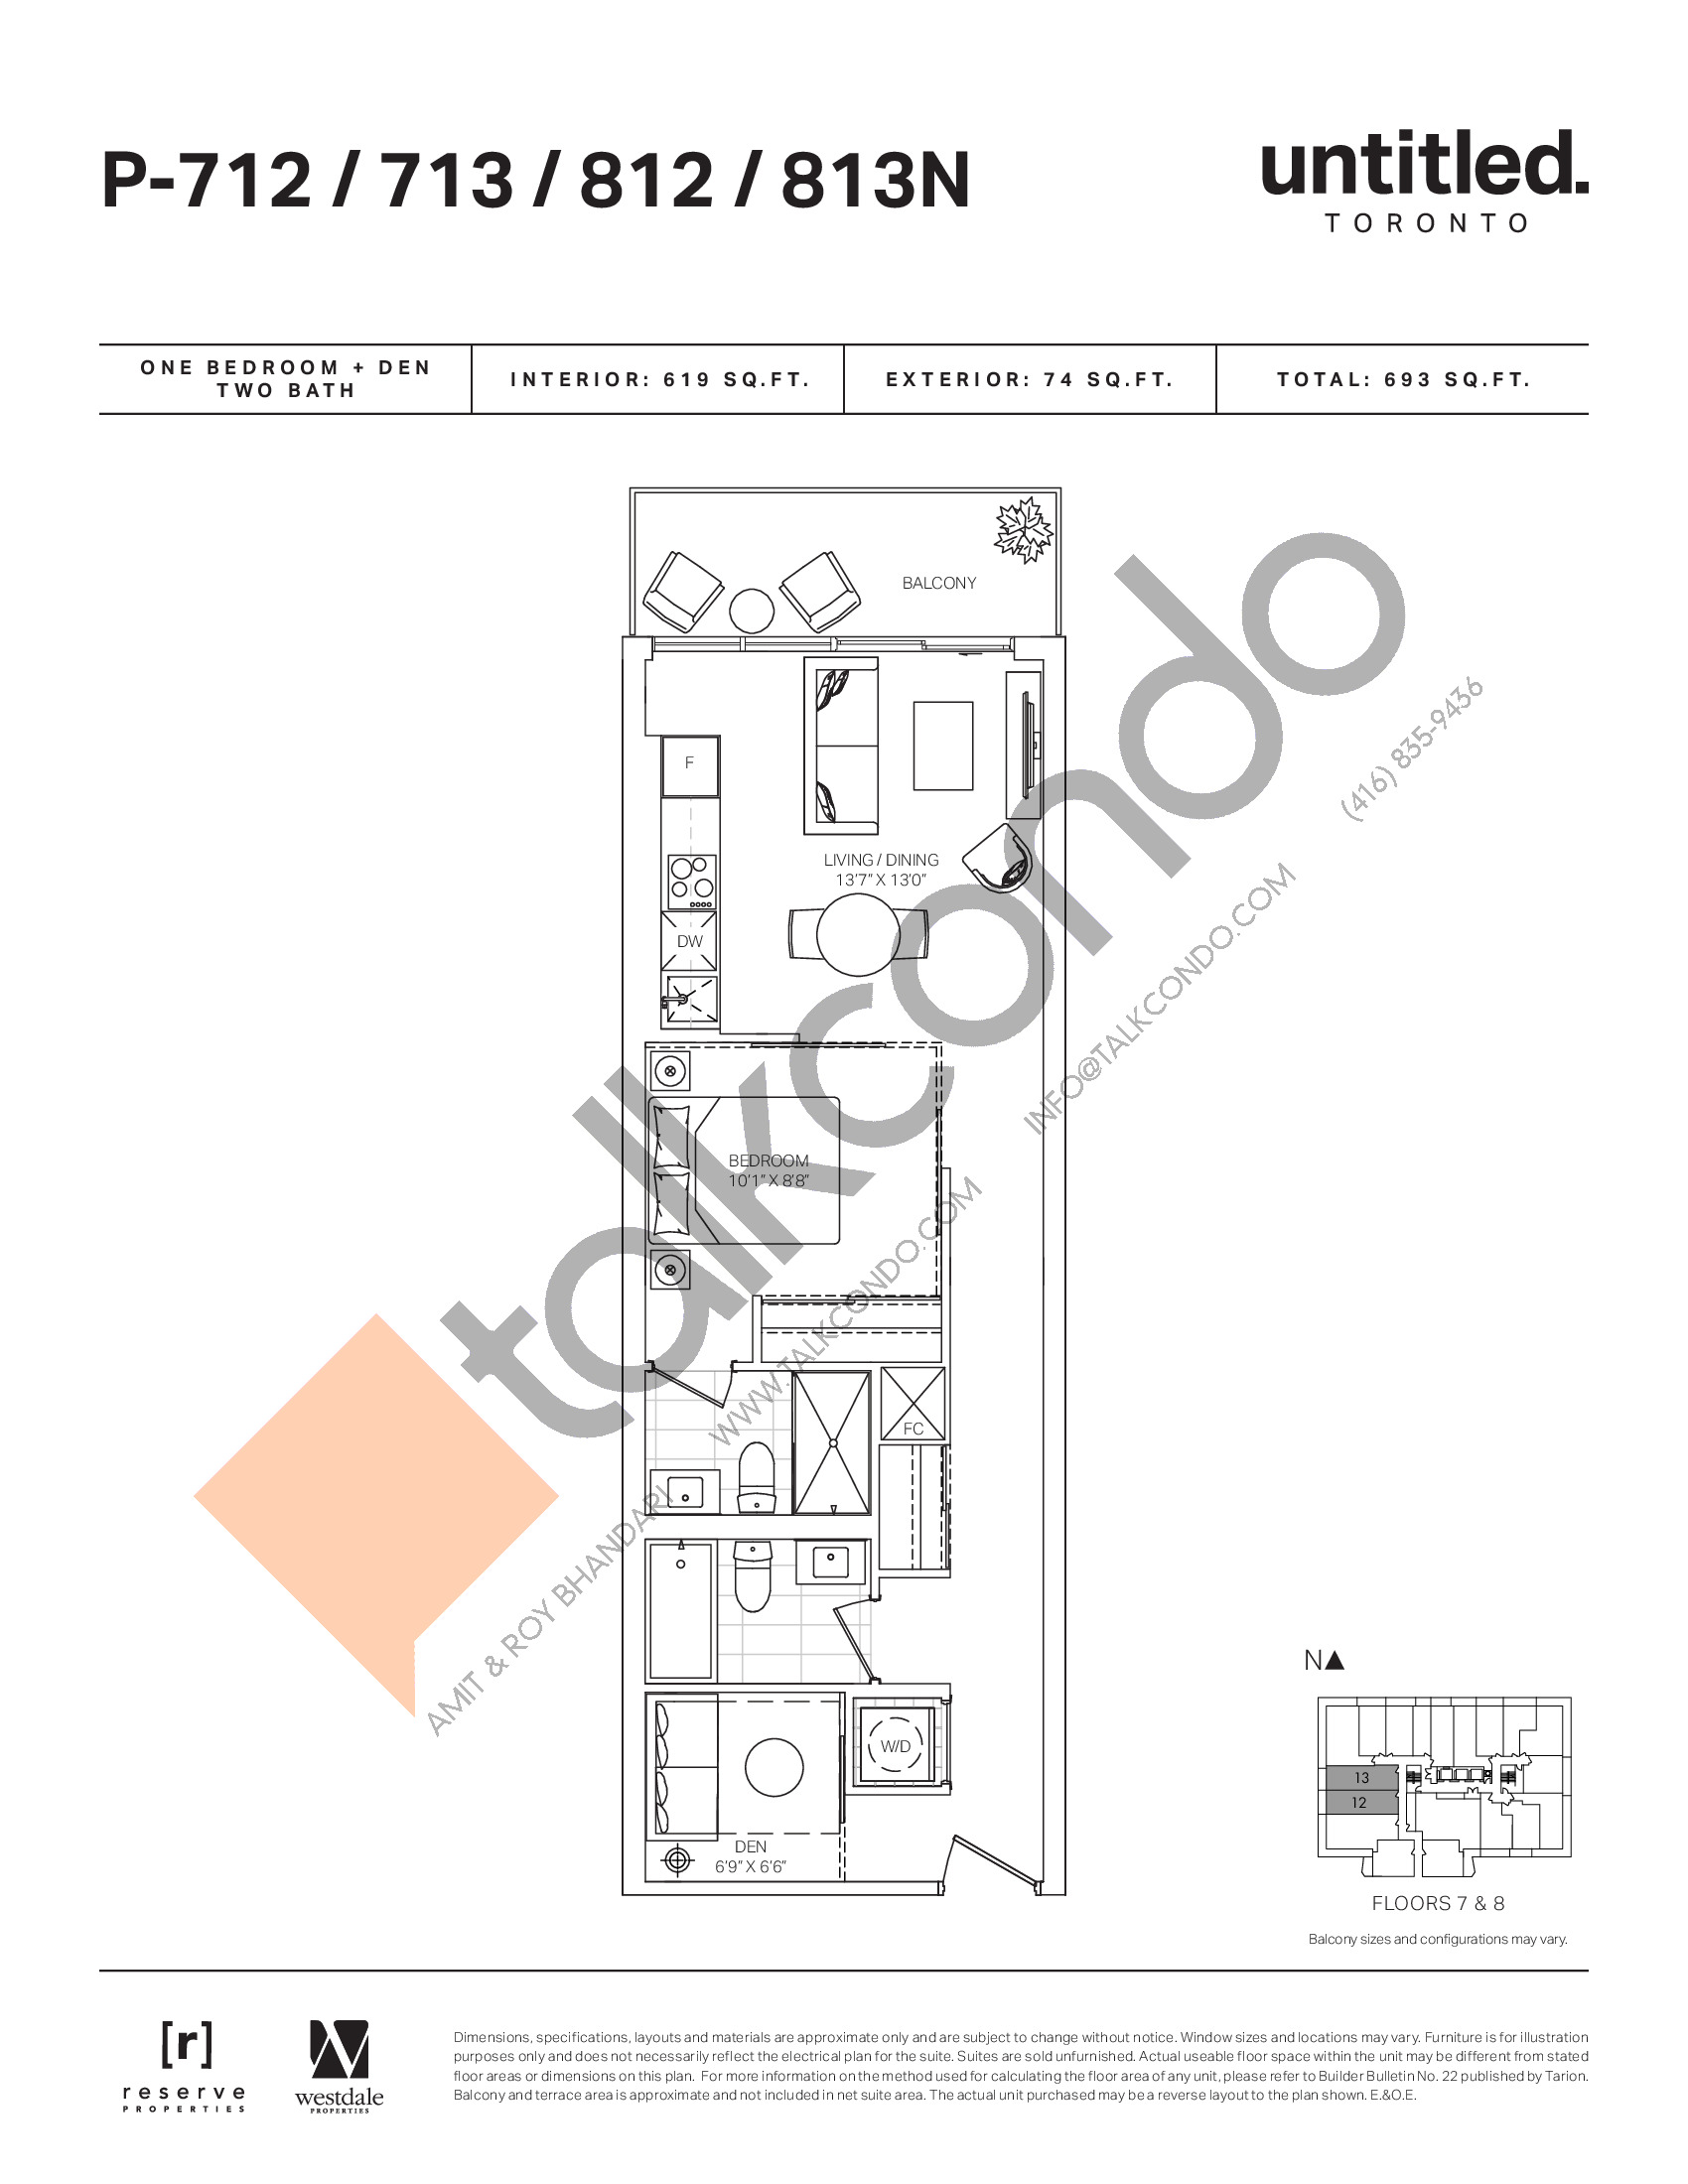 P-712/713/812/813N Floor Plan at Untitled North Tower Condos - 619 sq.ft